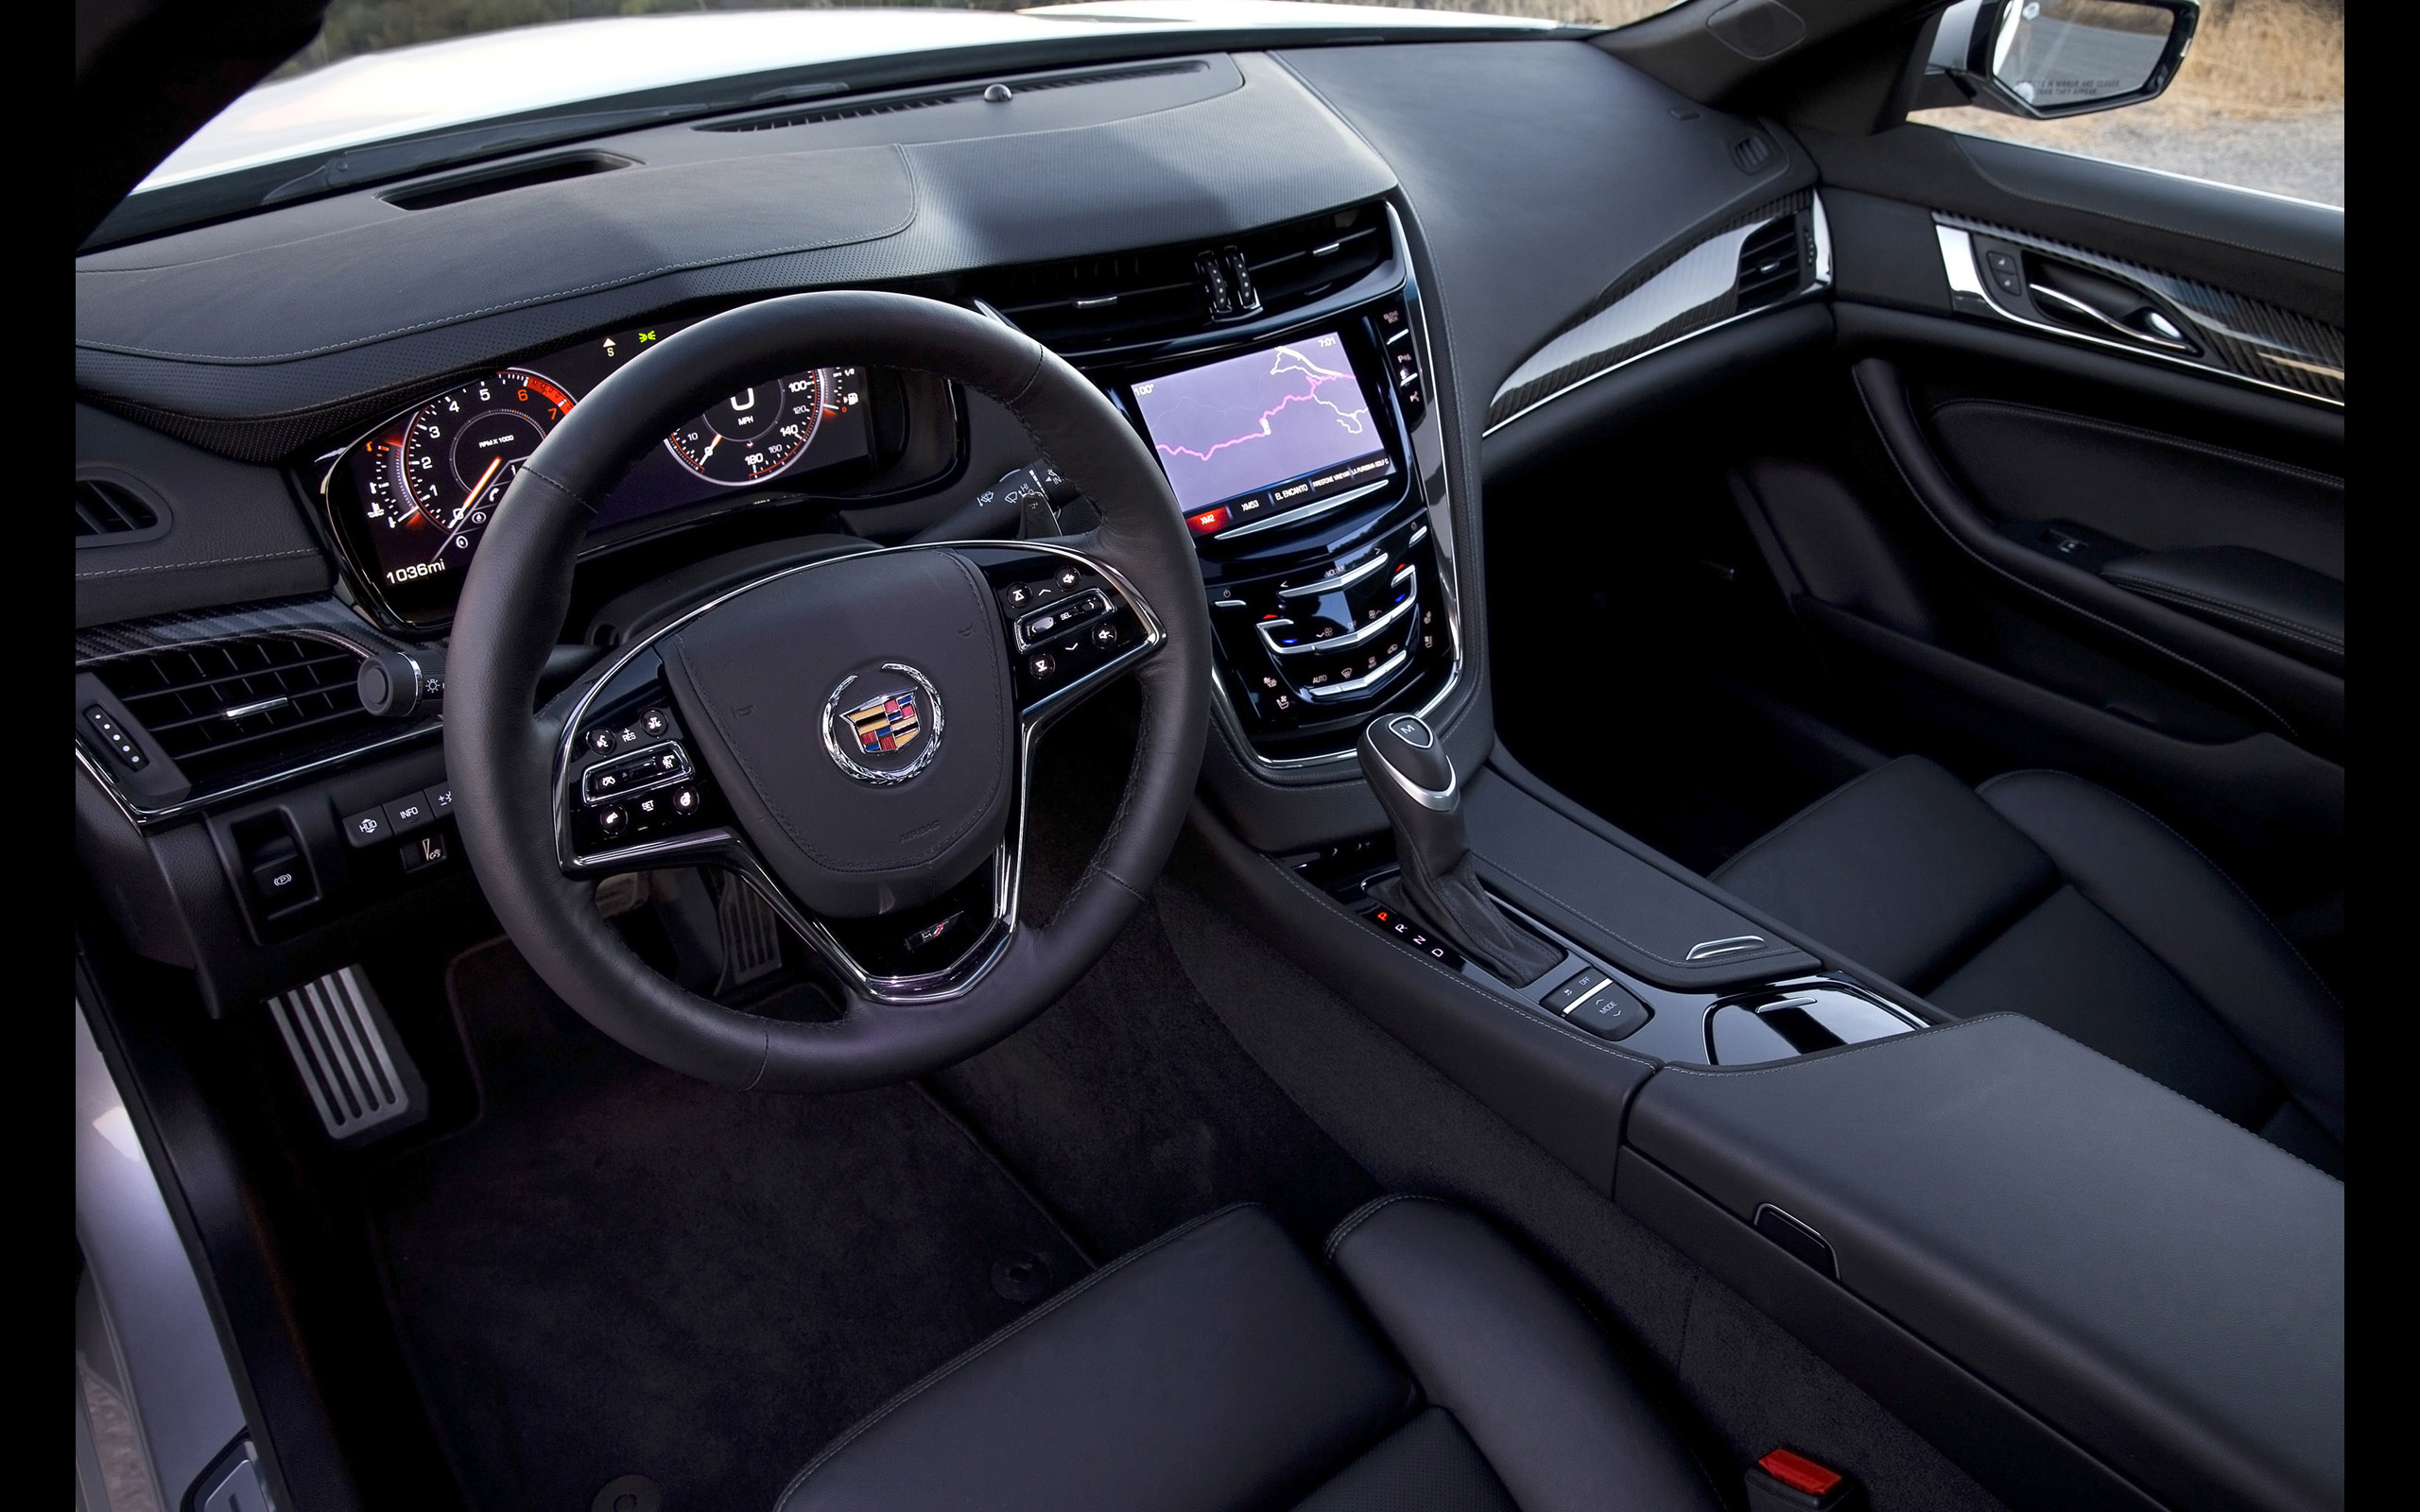 2014 cadillac cts vsport sedan luxury interior y wallpaper 2560x1600 156061 wallpaperup. Black Bedroom Furniture Sets. Home Design Ideas